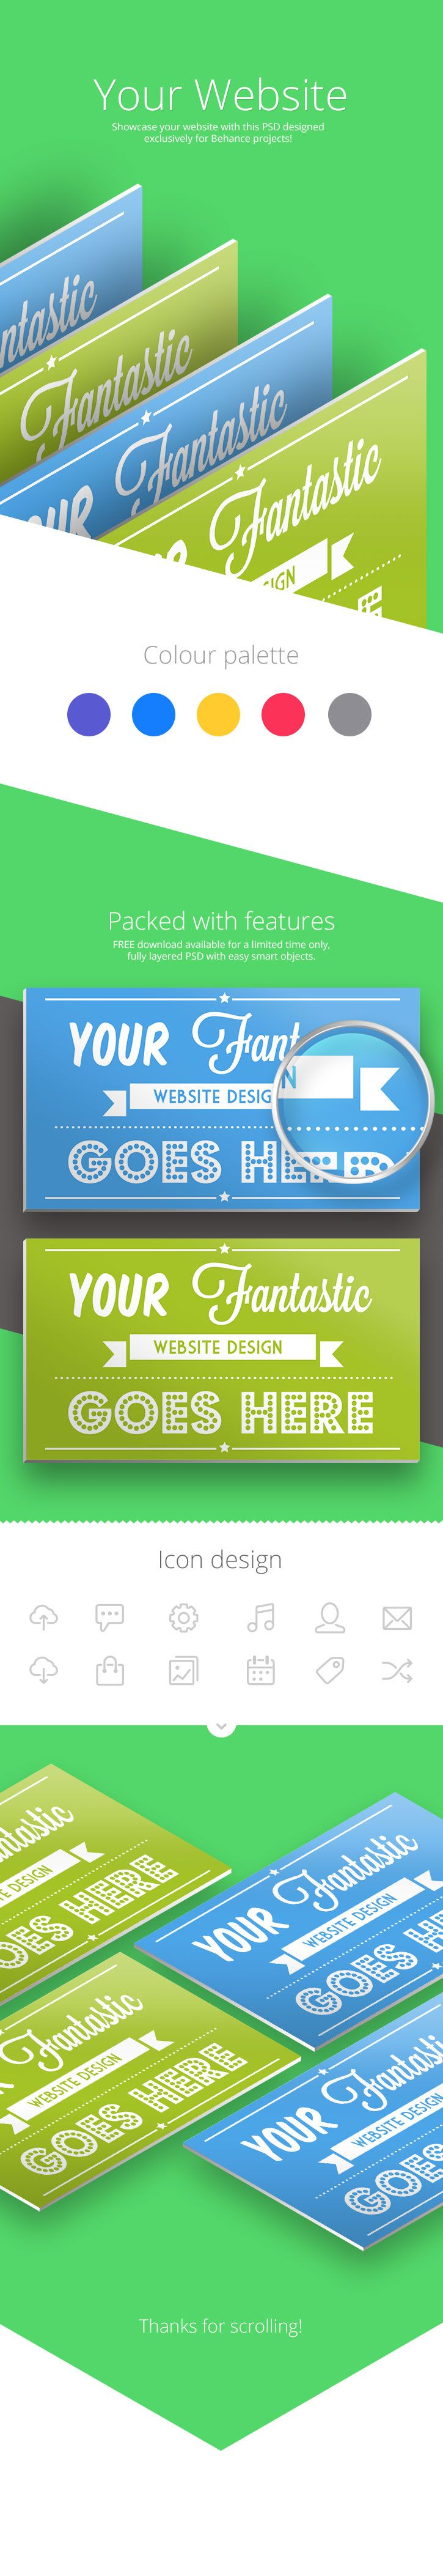 behance website showcase template pitchstock design promotion